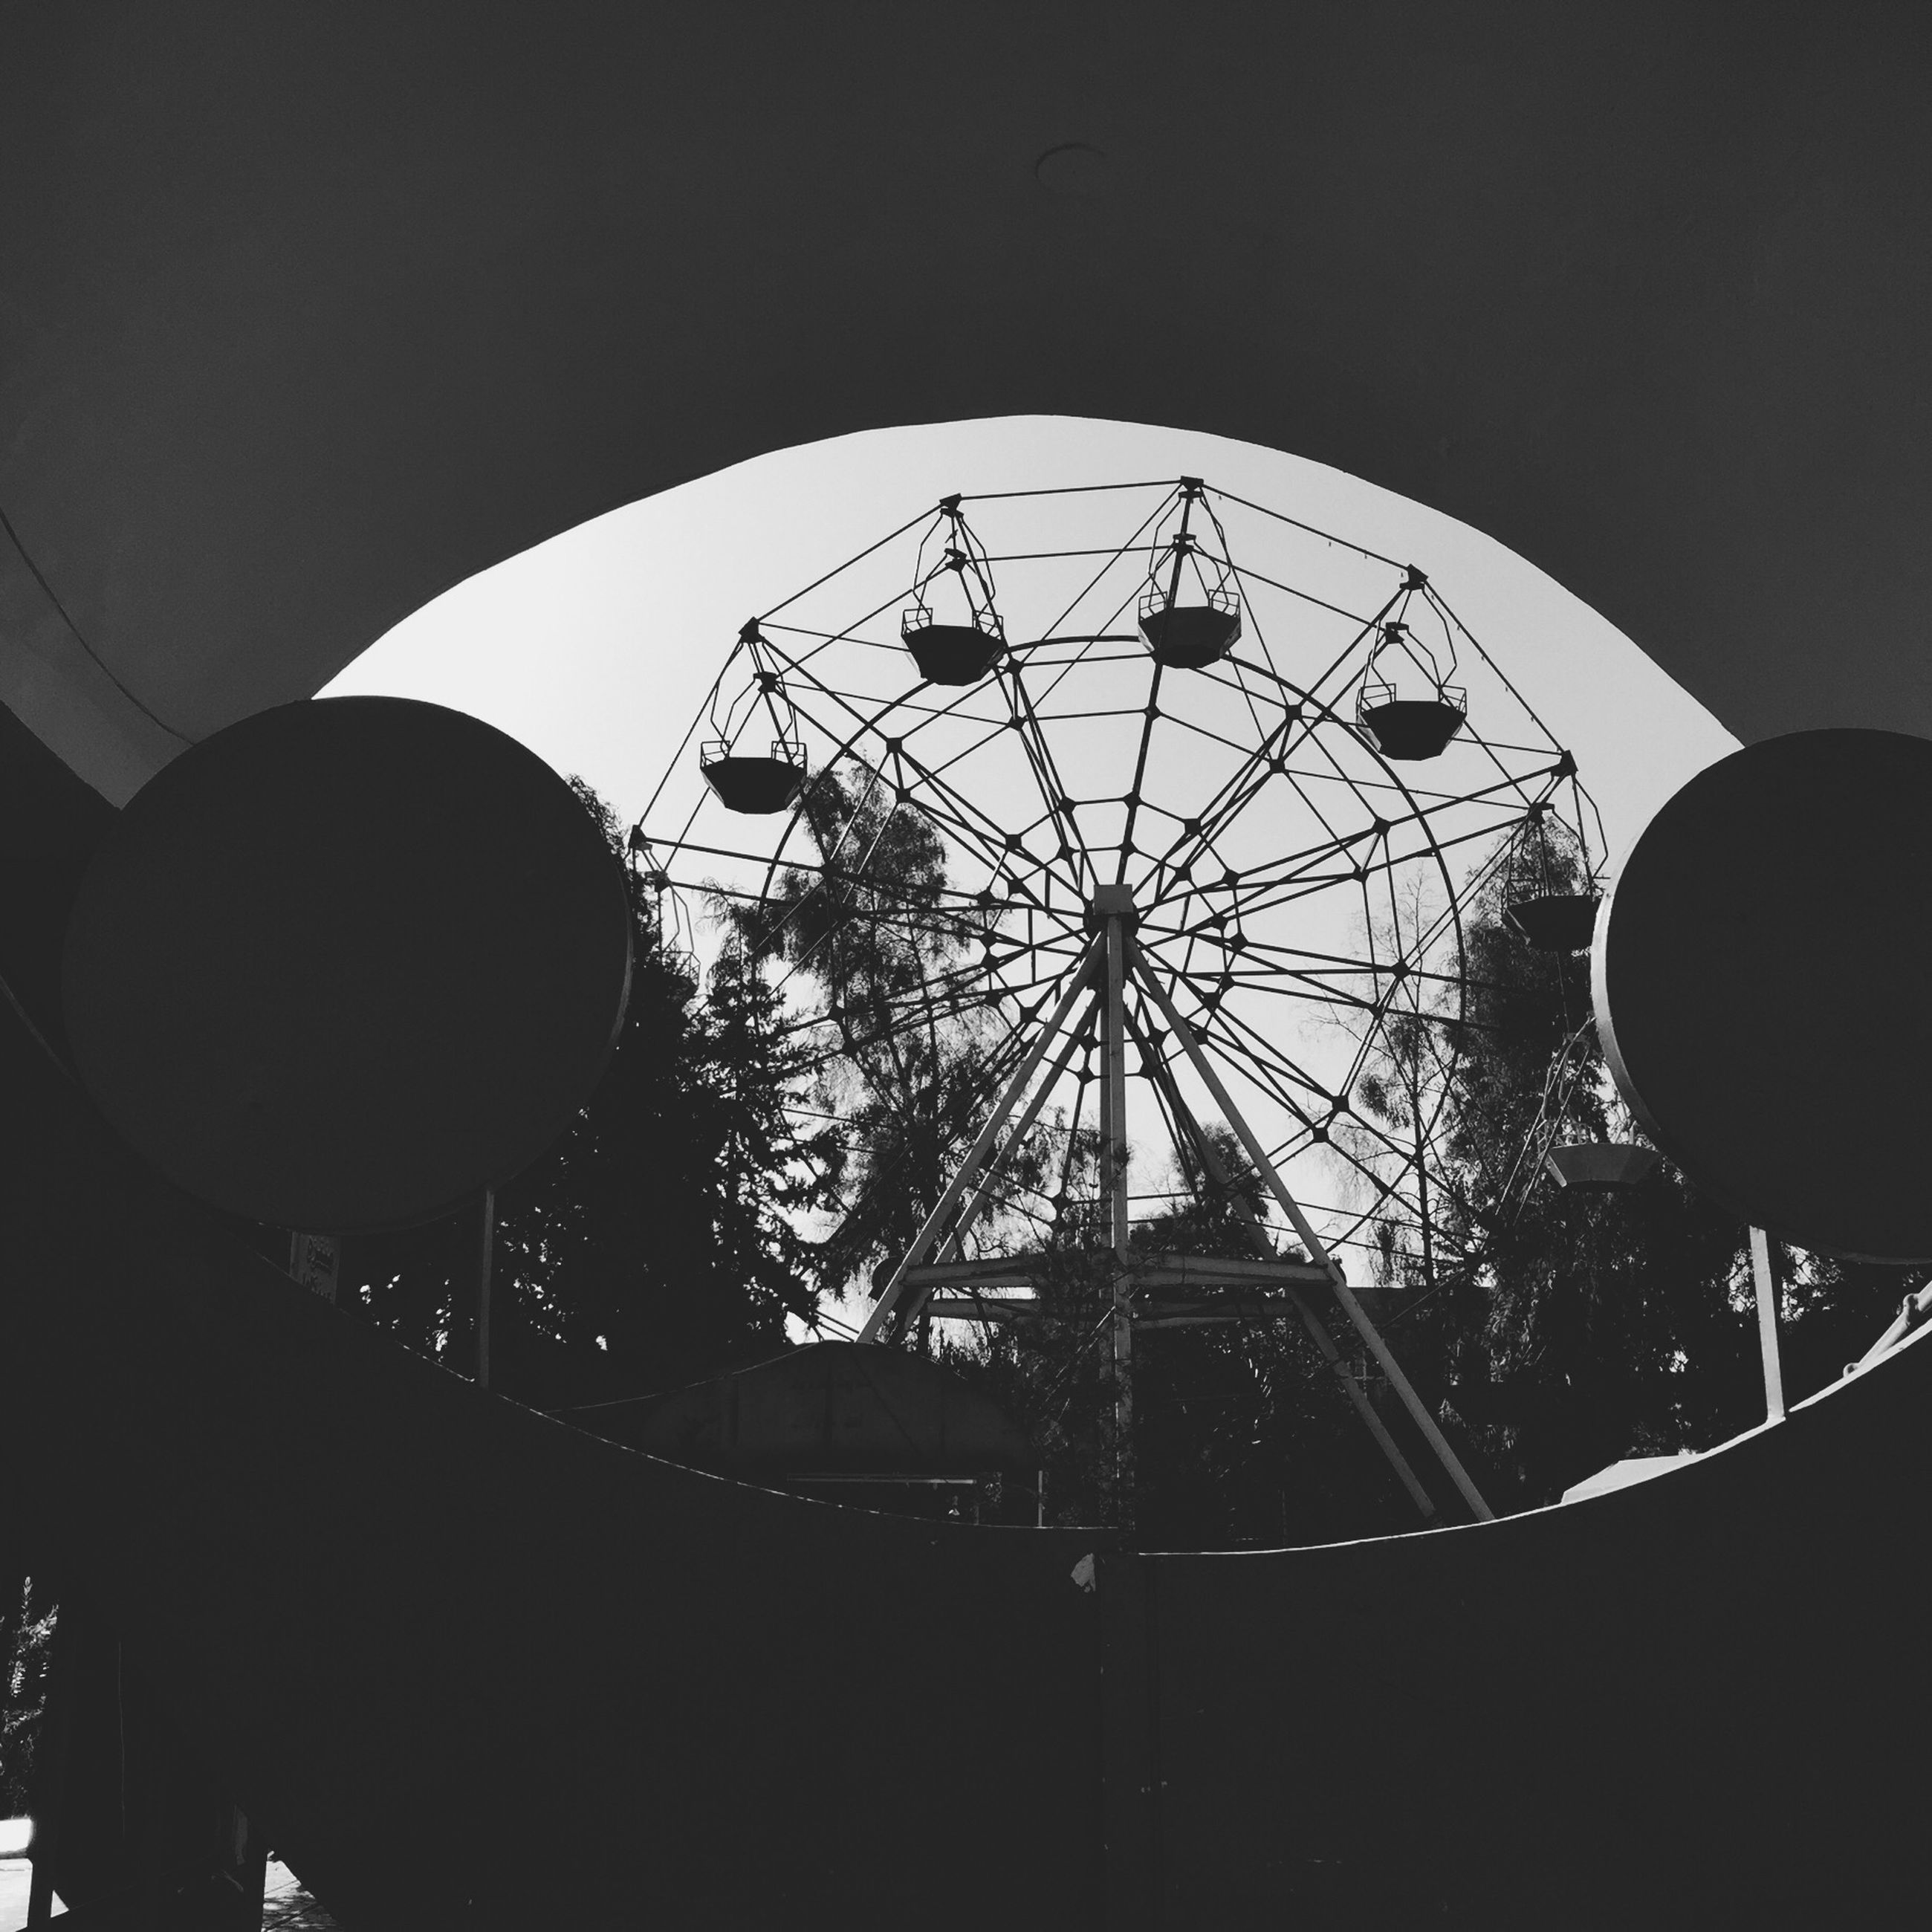 ferris wheel, low angle view, amusement park ride, amusement park, arts culture and entertainment, built structure, architecture, sky, circle, illuminated, clear sky, fun, famous place, travel destinations, travel, silhouette, geometric shape, sphere, night, outdoors